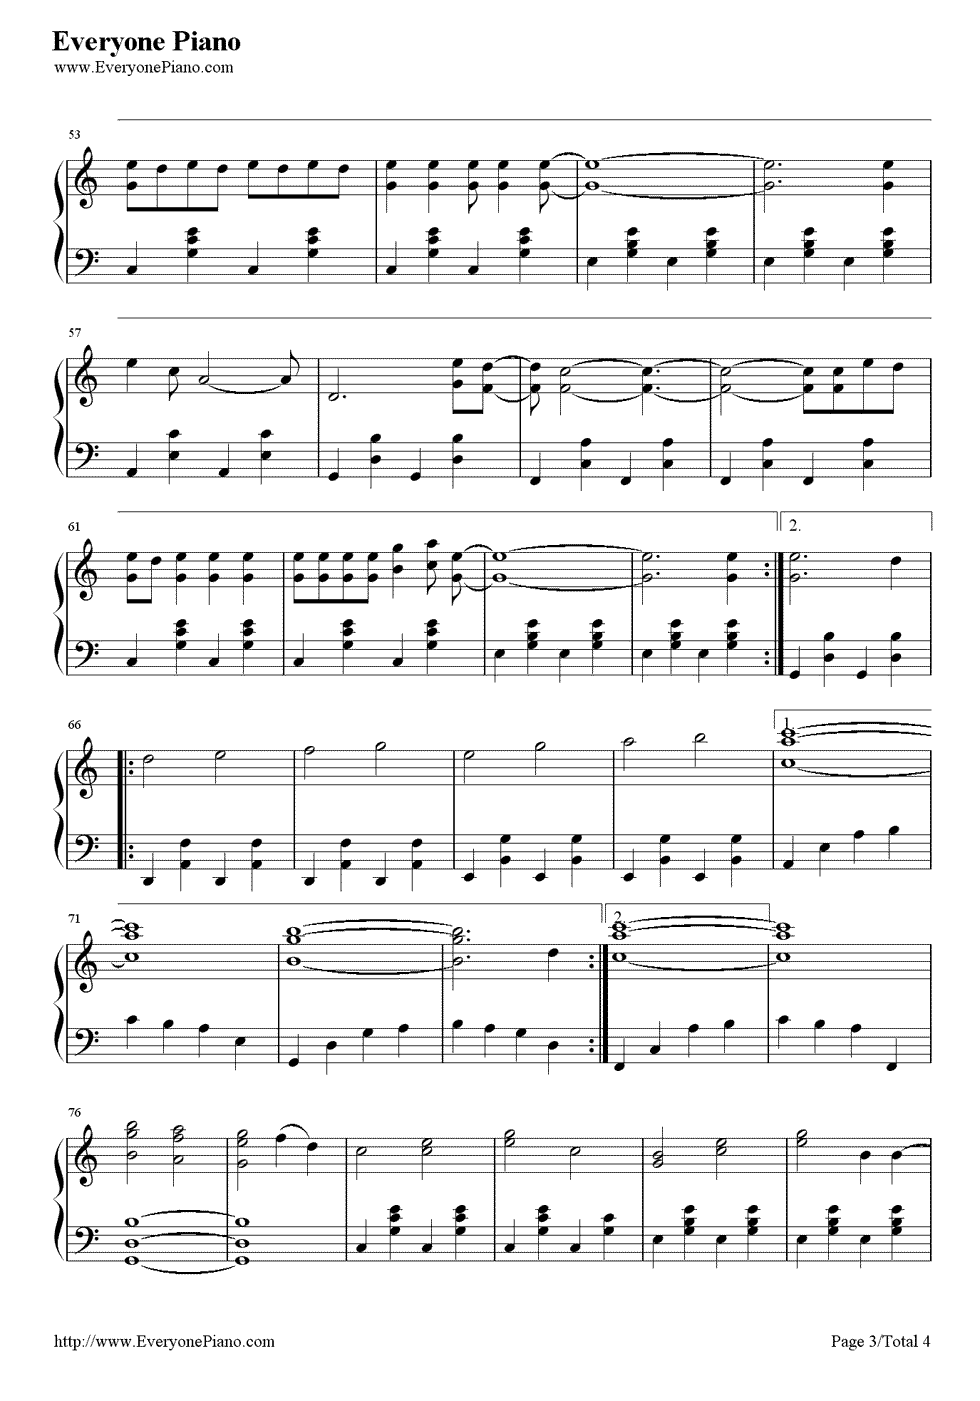 Count On Me-Bruno Mars Stave Preview 3-Free Piano Sheet Music u0026 Piano Chords